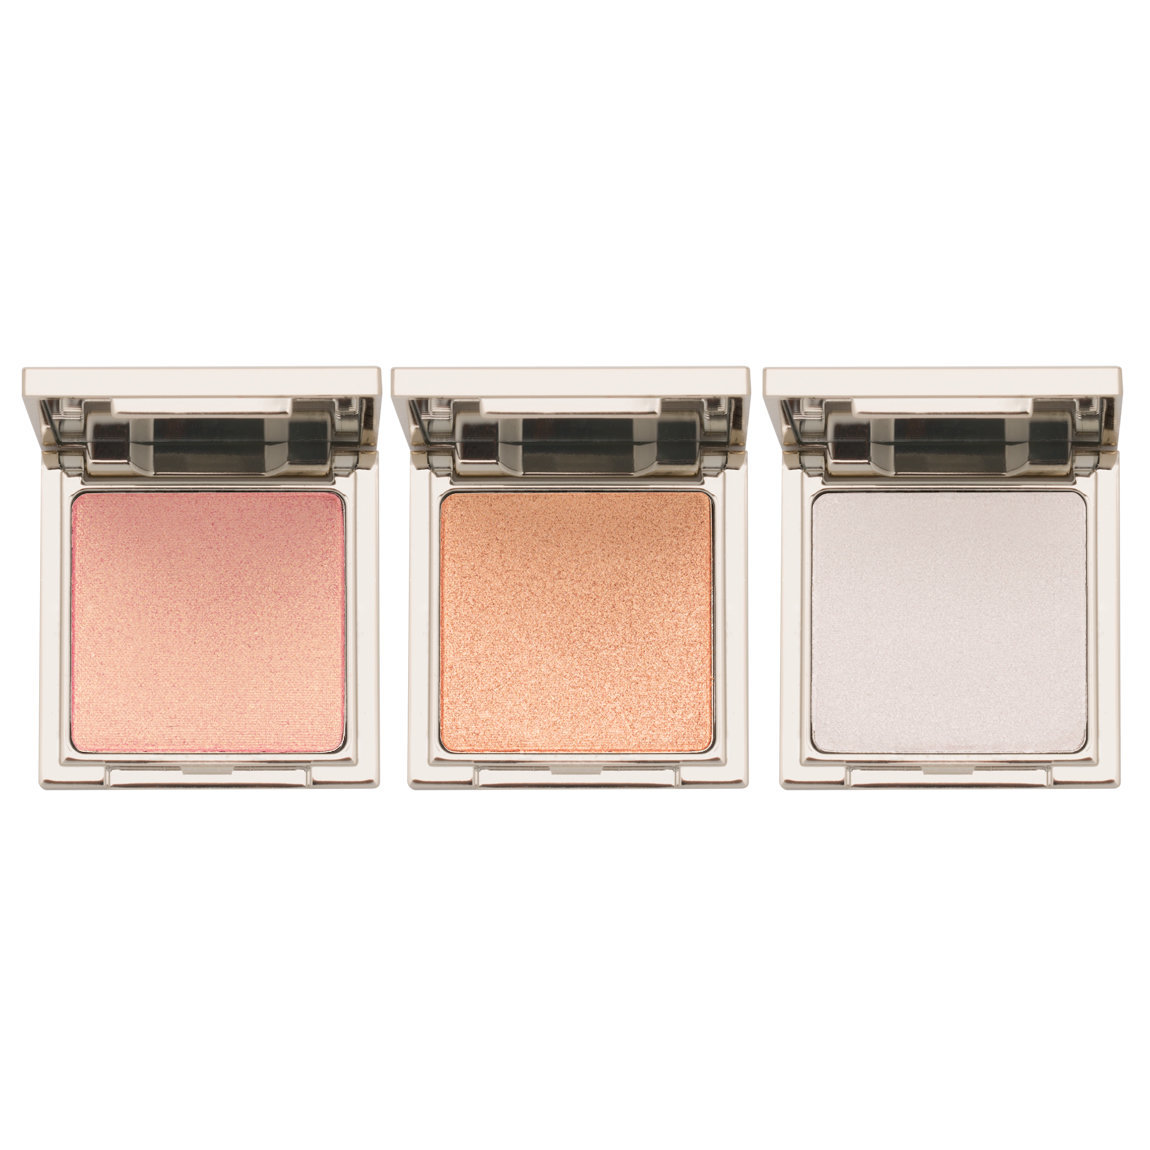 Jouer Cosmetics Powder Highlighter Trio Set Set 2 product swatch.